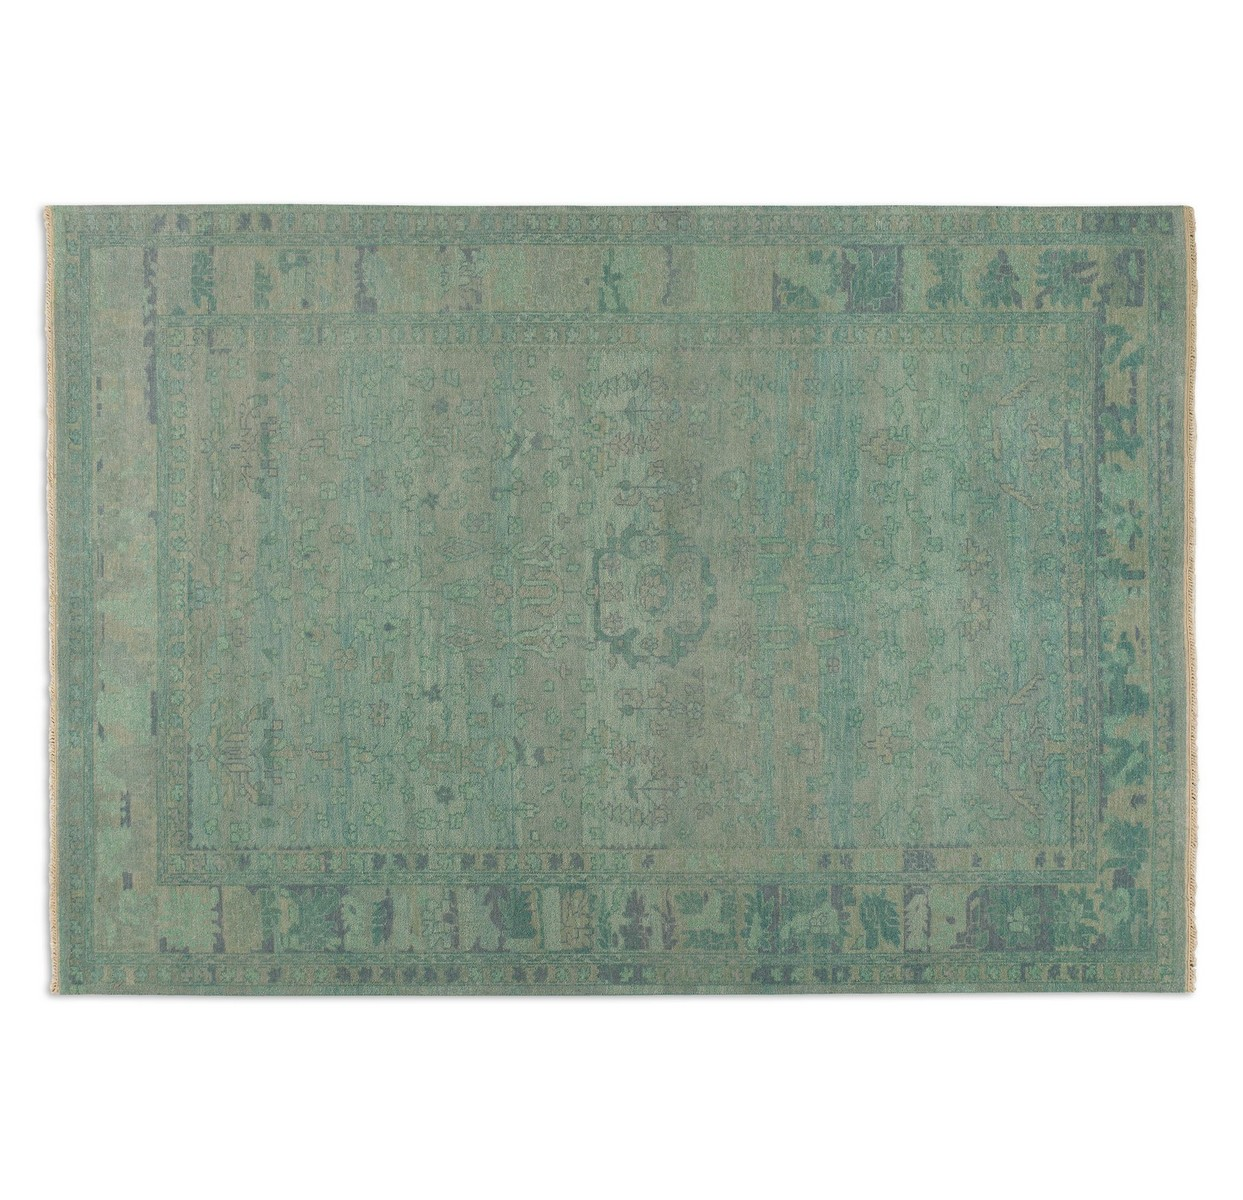 Uttermost Ismir 9 X 12 Rug - Blue Green